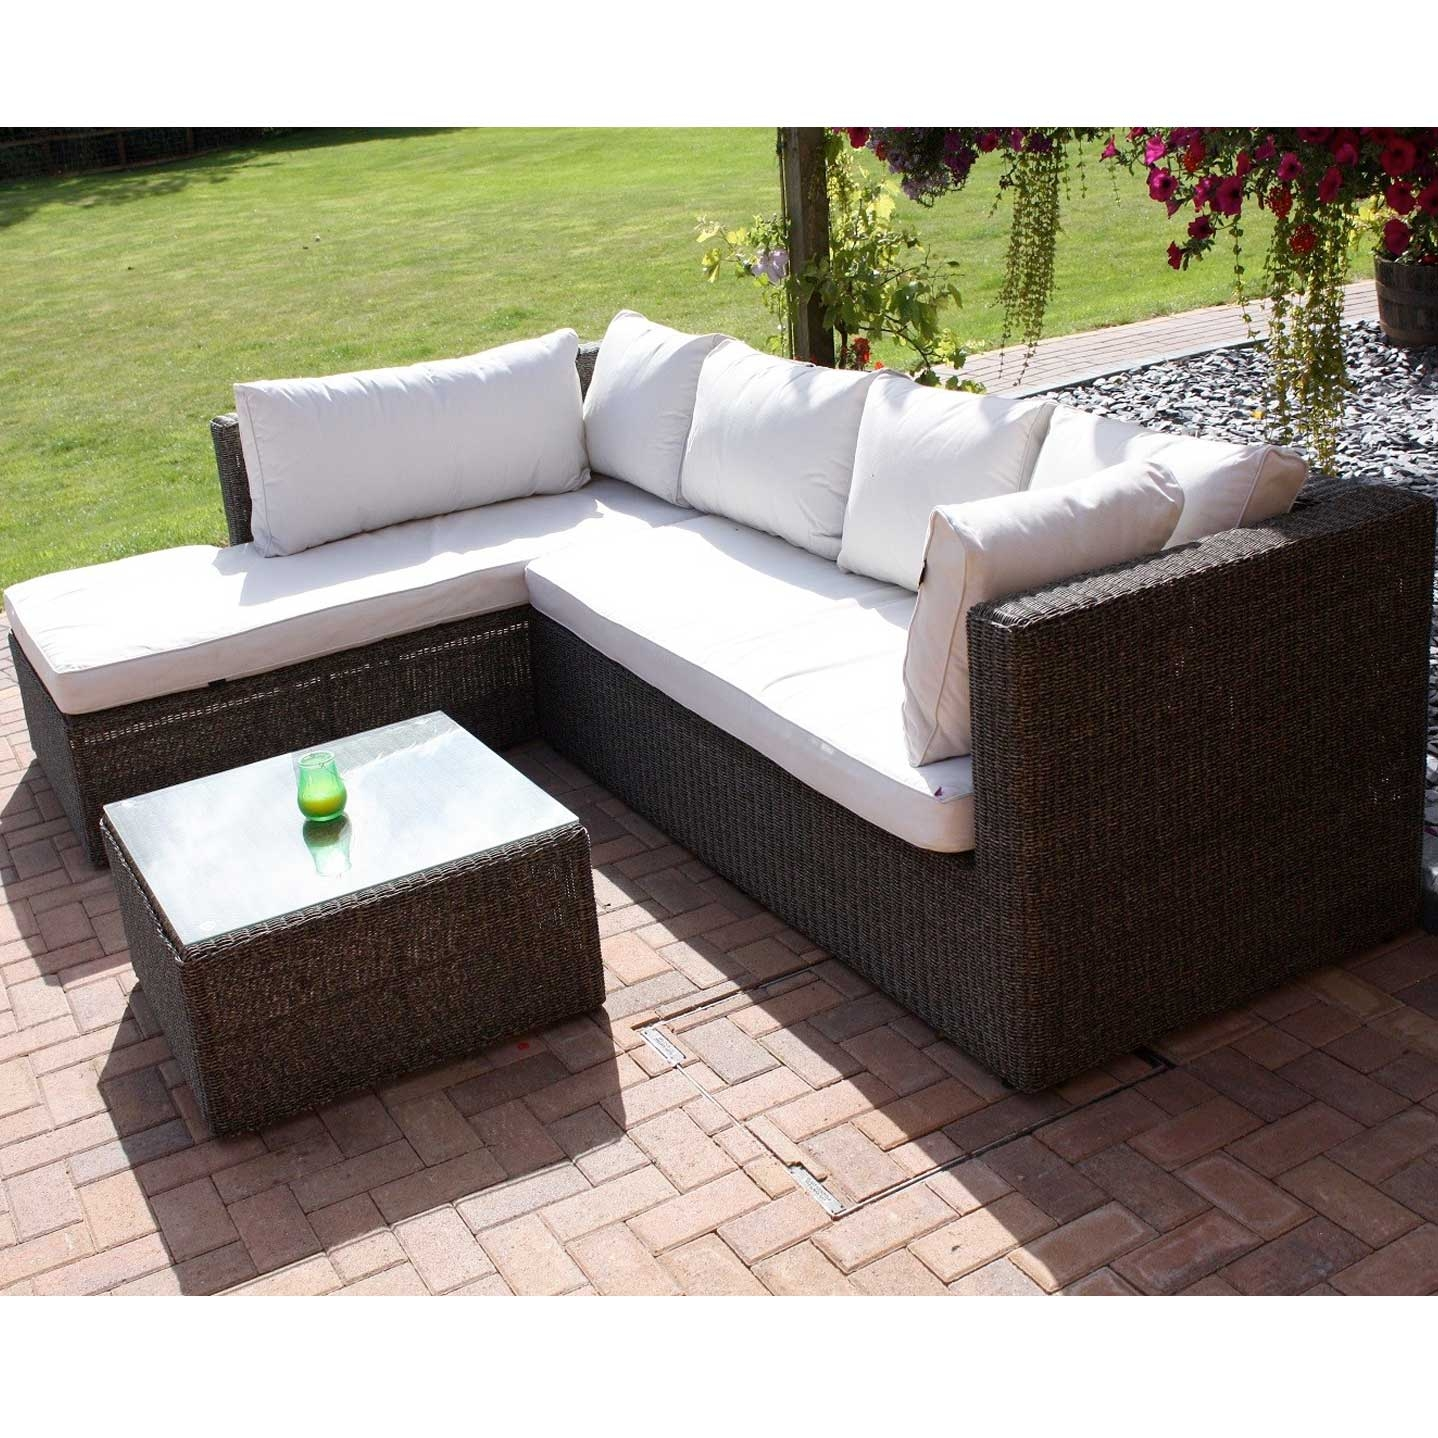 Premium Triton Rattan Sofa Set - Right Handed